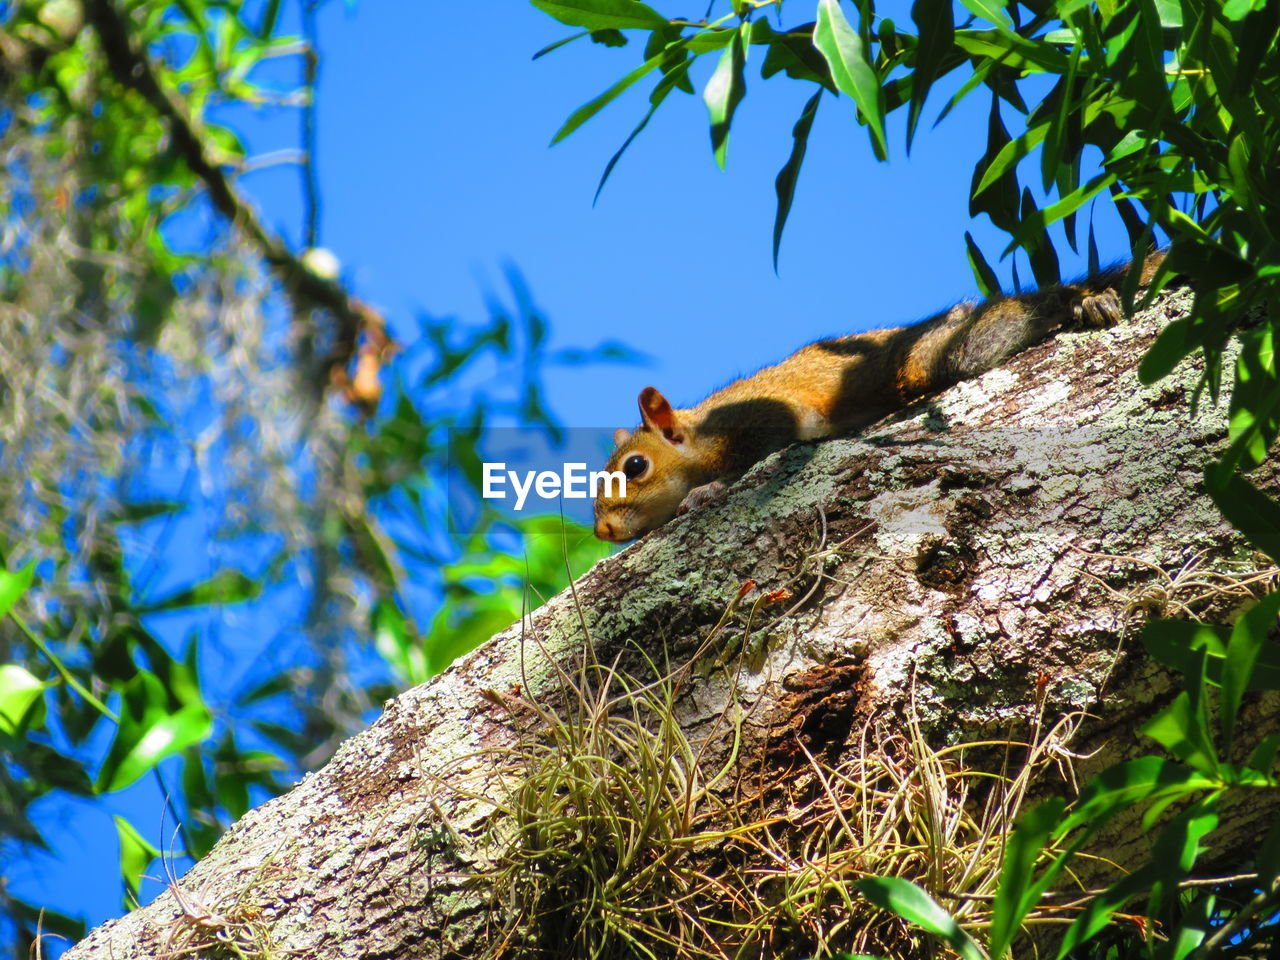 tree, animal, animal themes, animal wildlife, plant, animals in the wild, one animal, vertebrate, branch, tree trunk, trunk, nature, no people, mammal, low angle view, day, squirrel, rodent, selective focus, outdoors